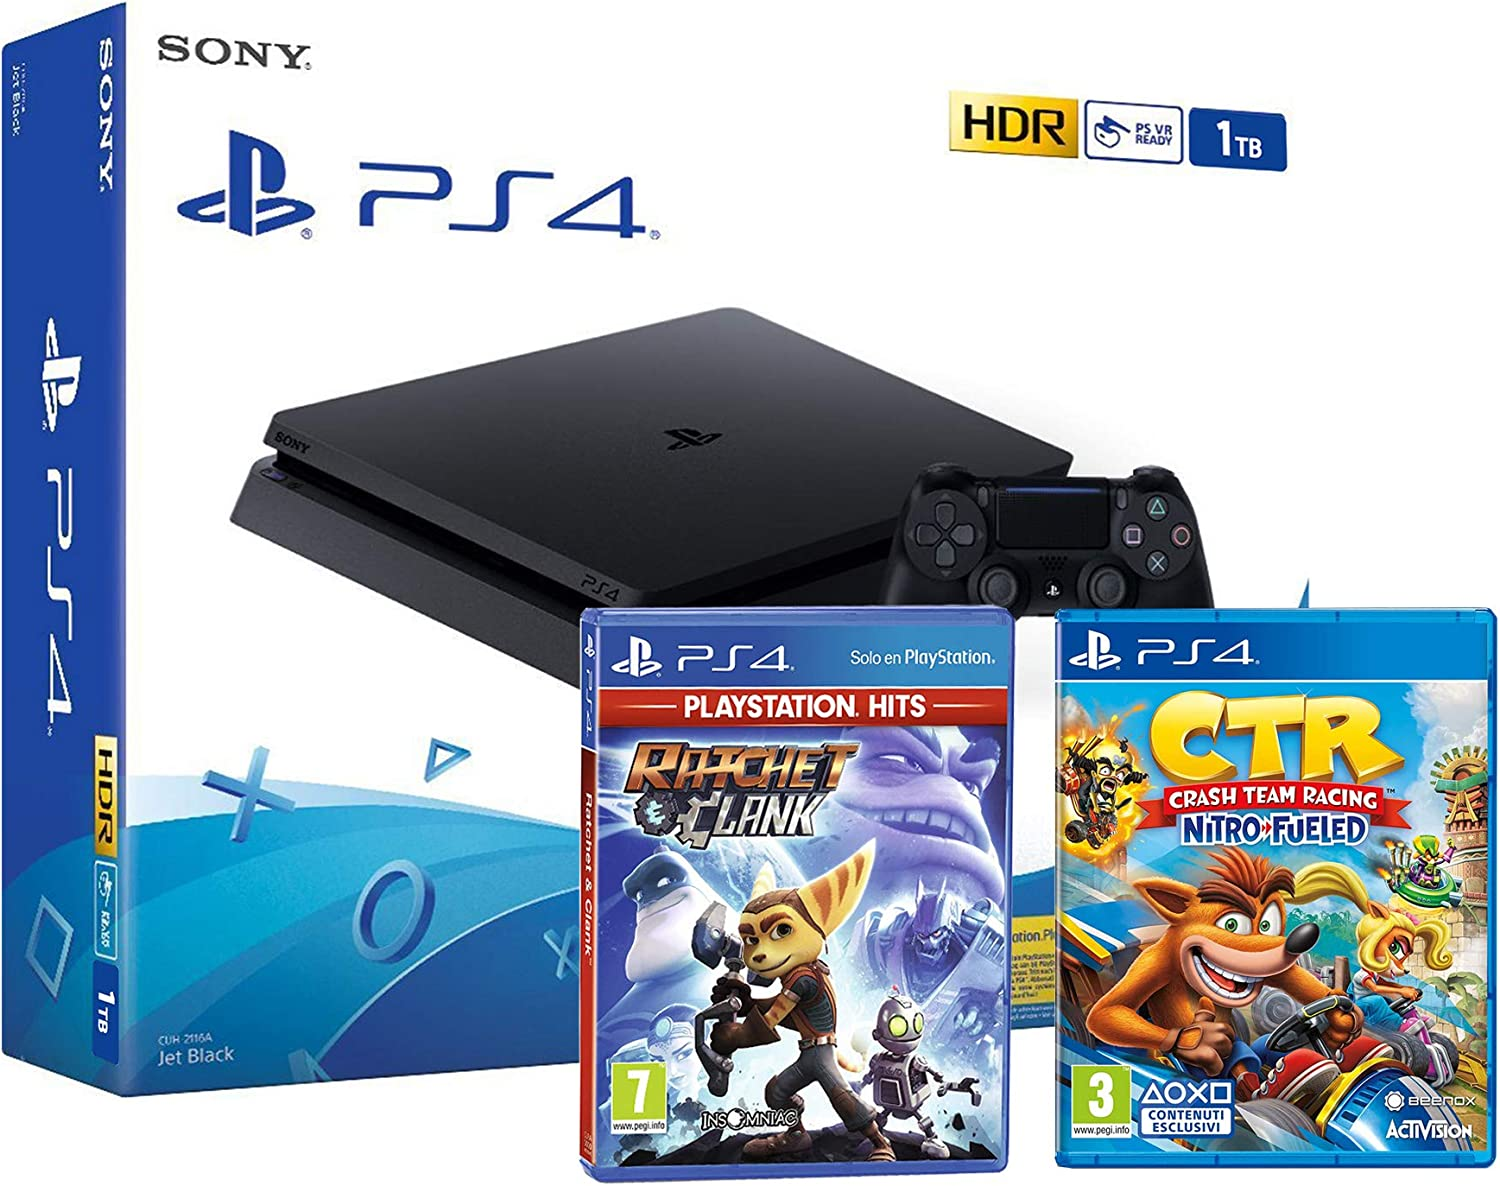 PS4 Slim 1Tb Negra Playstation 4 Consola + Ratchet & Clank + Crash Team Racing: Nitro Fueled: Amazon.es: Videojuegos